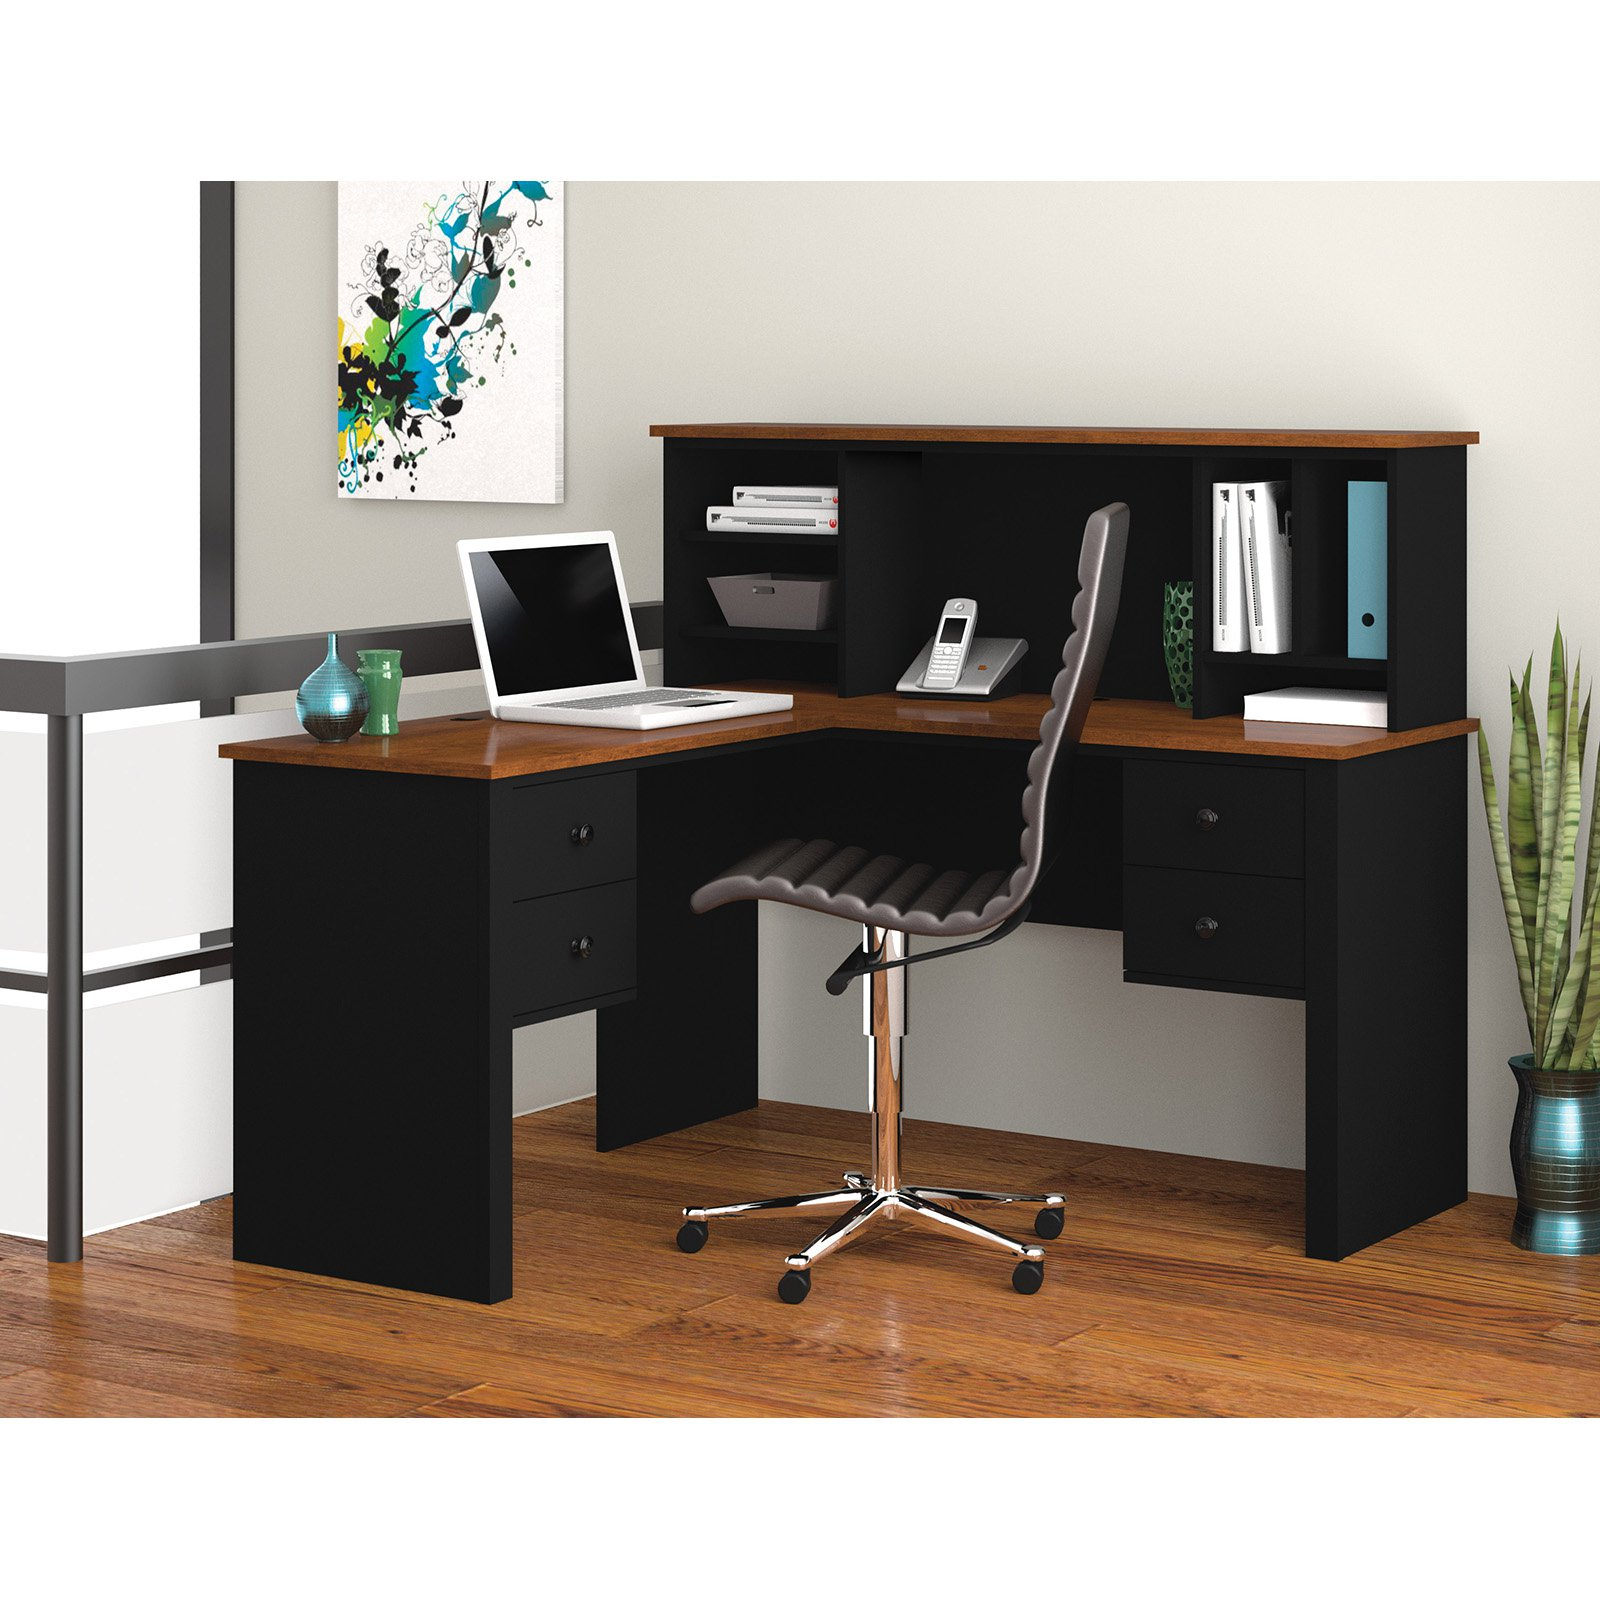 Bestar 45850-18 Somerville L-Shaped Desk with Hutch - Black ...